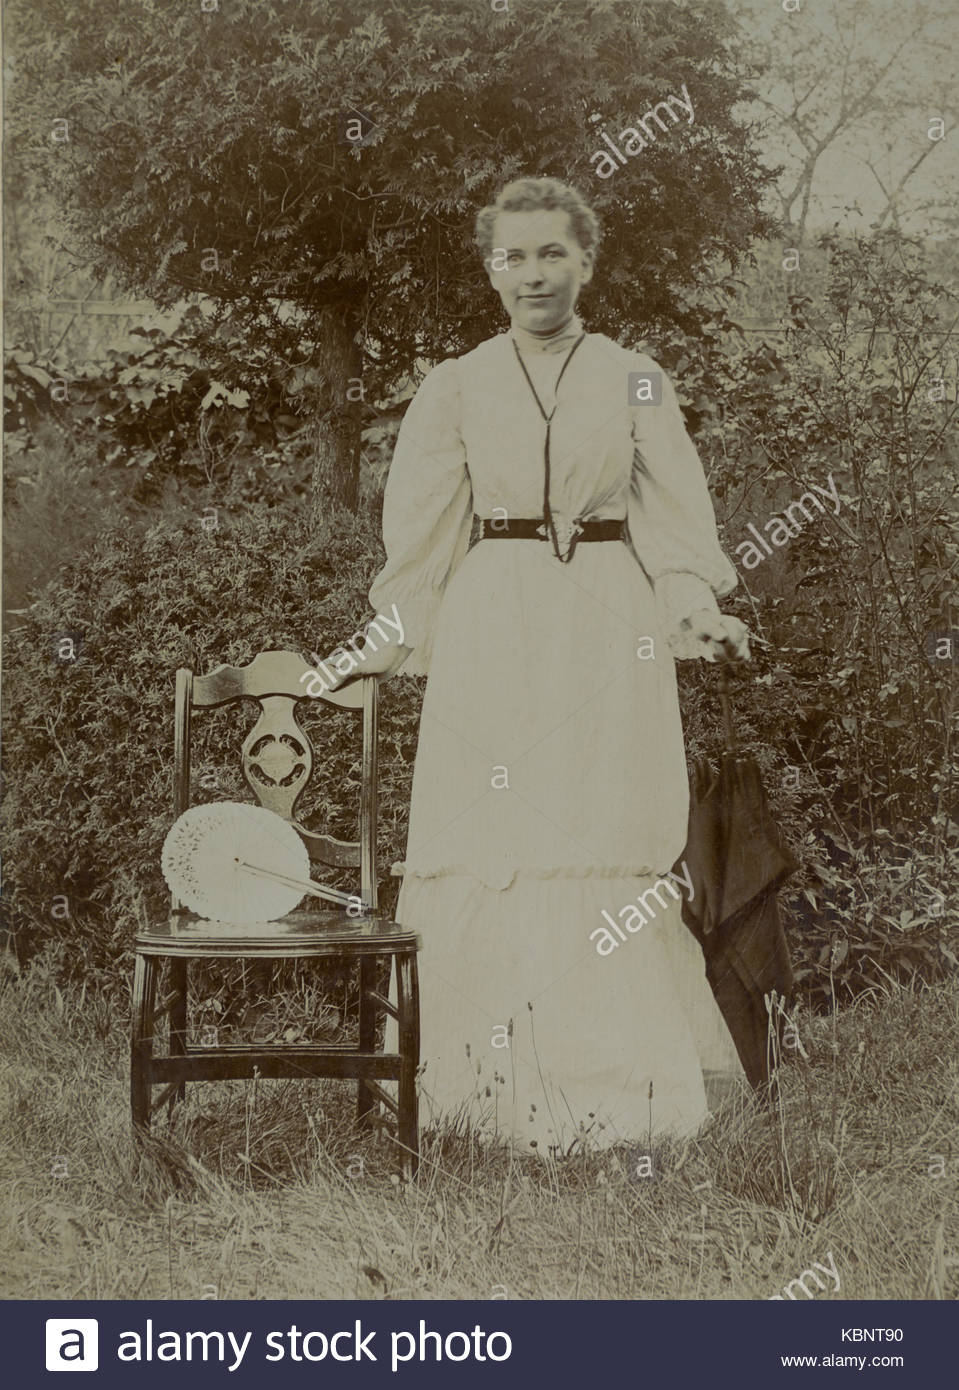 American archive monochrome photo of a young woman or girl standing next to a chair in a garden A fan is on the Stock Photo